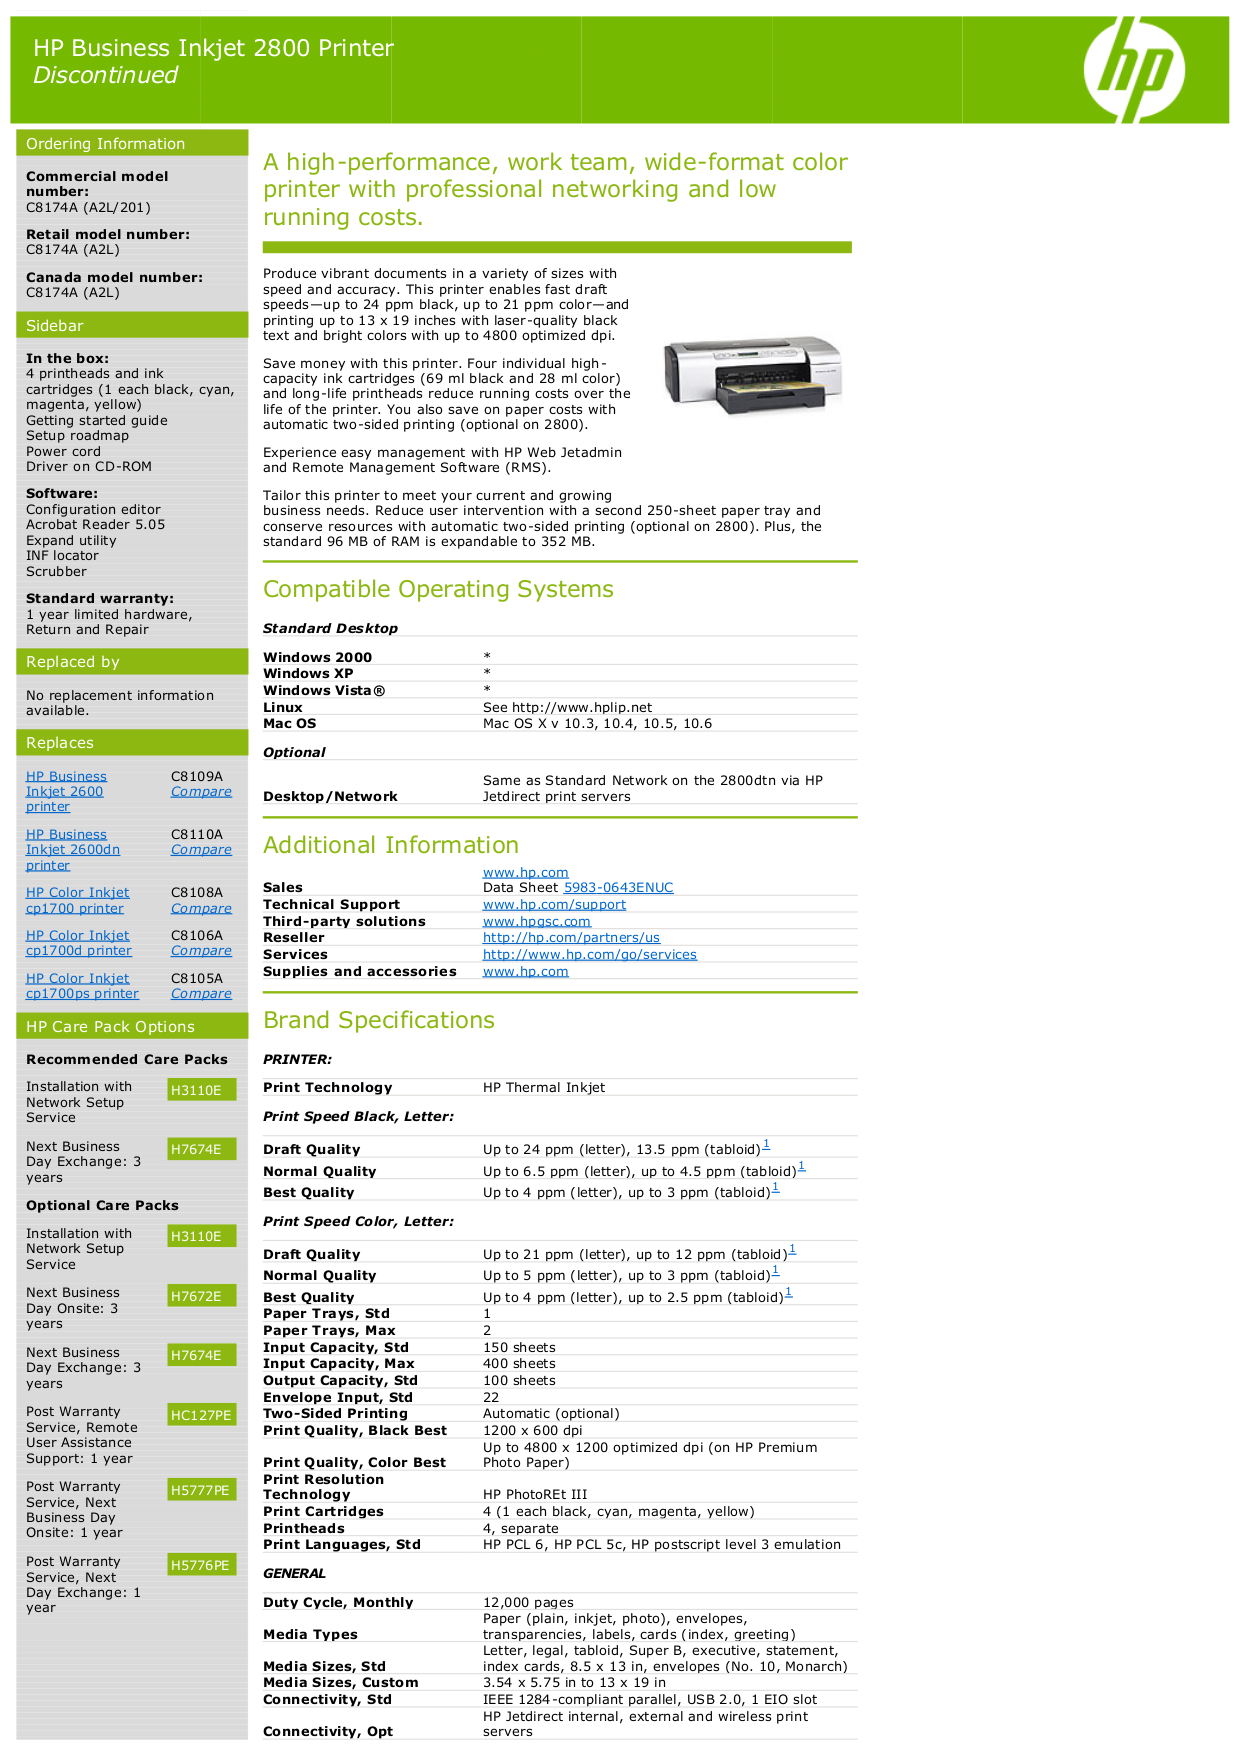 pdf for HP Printer Business Inkjet cp1700d manual